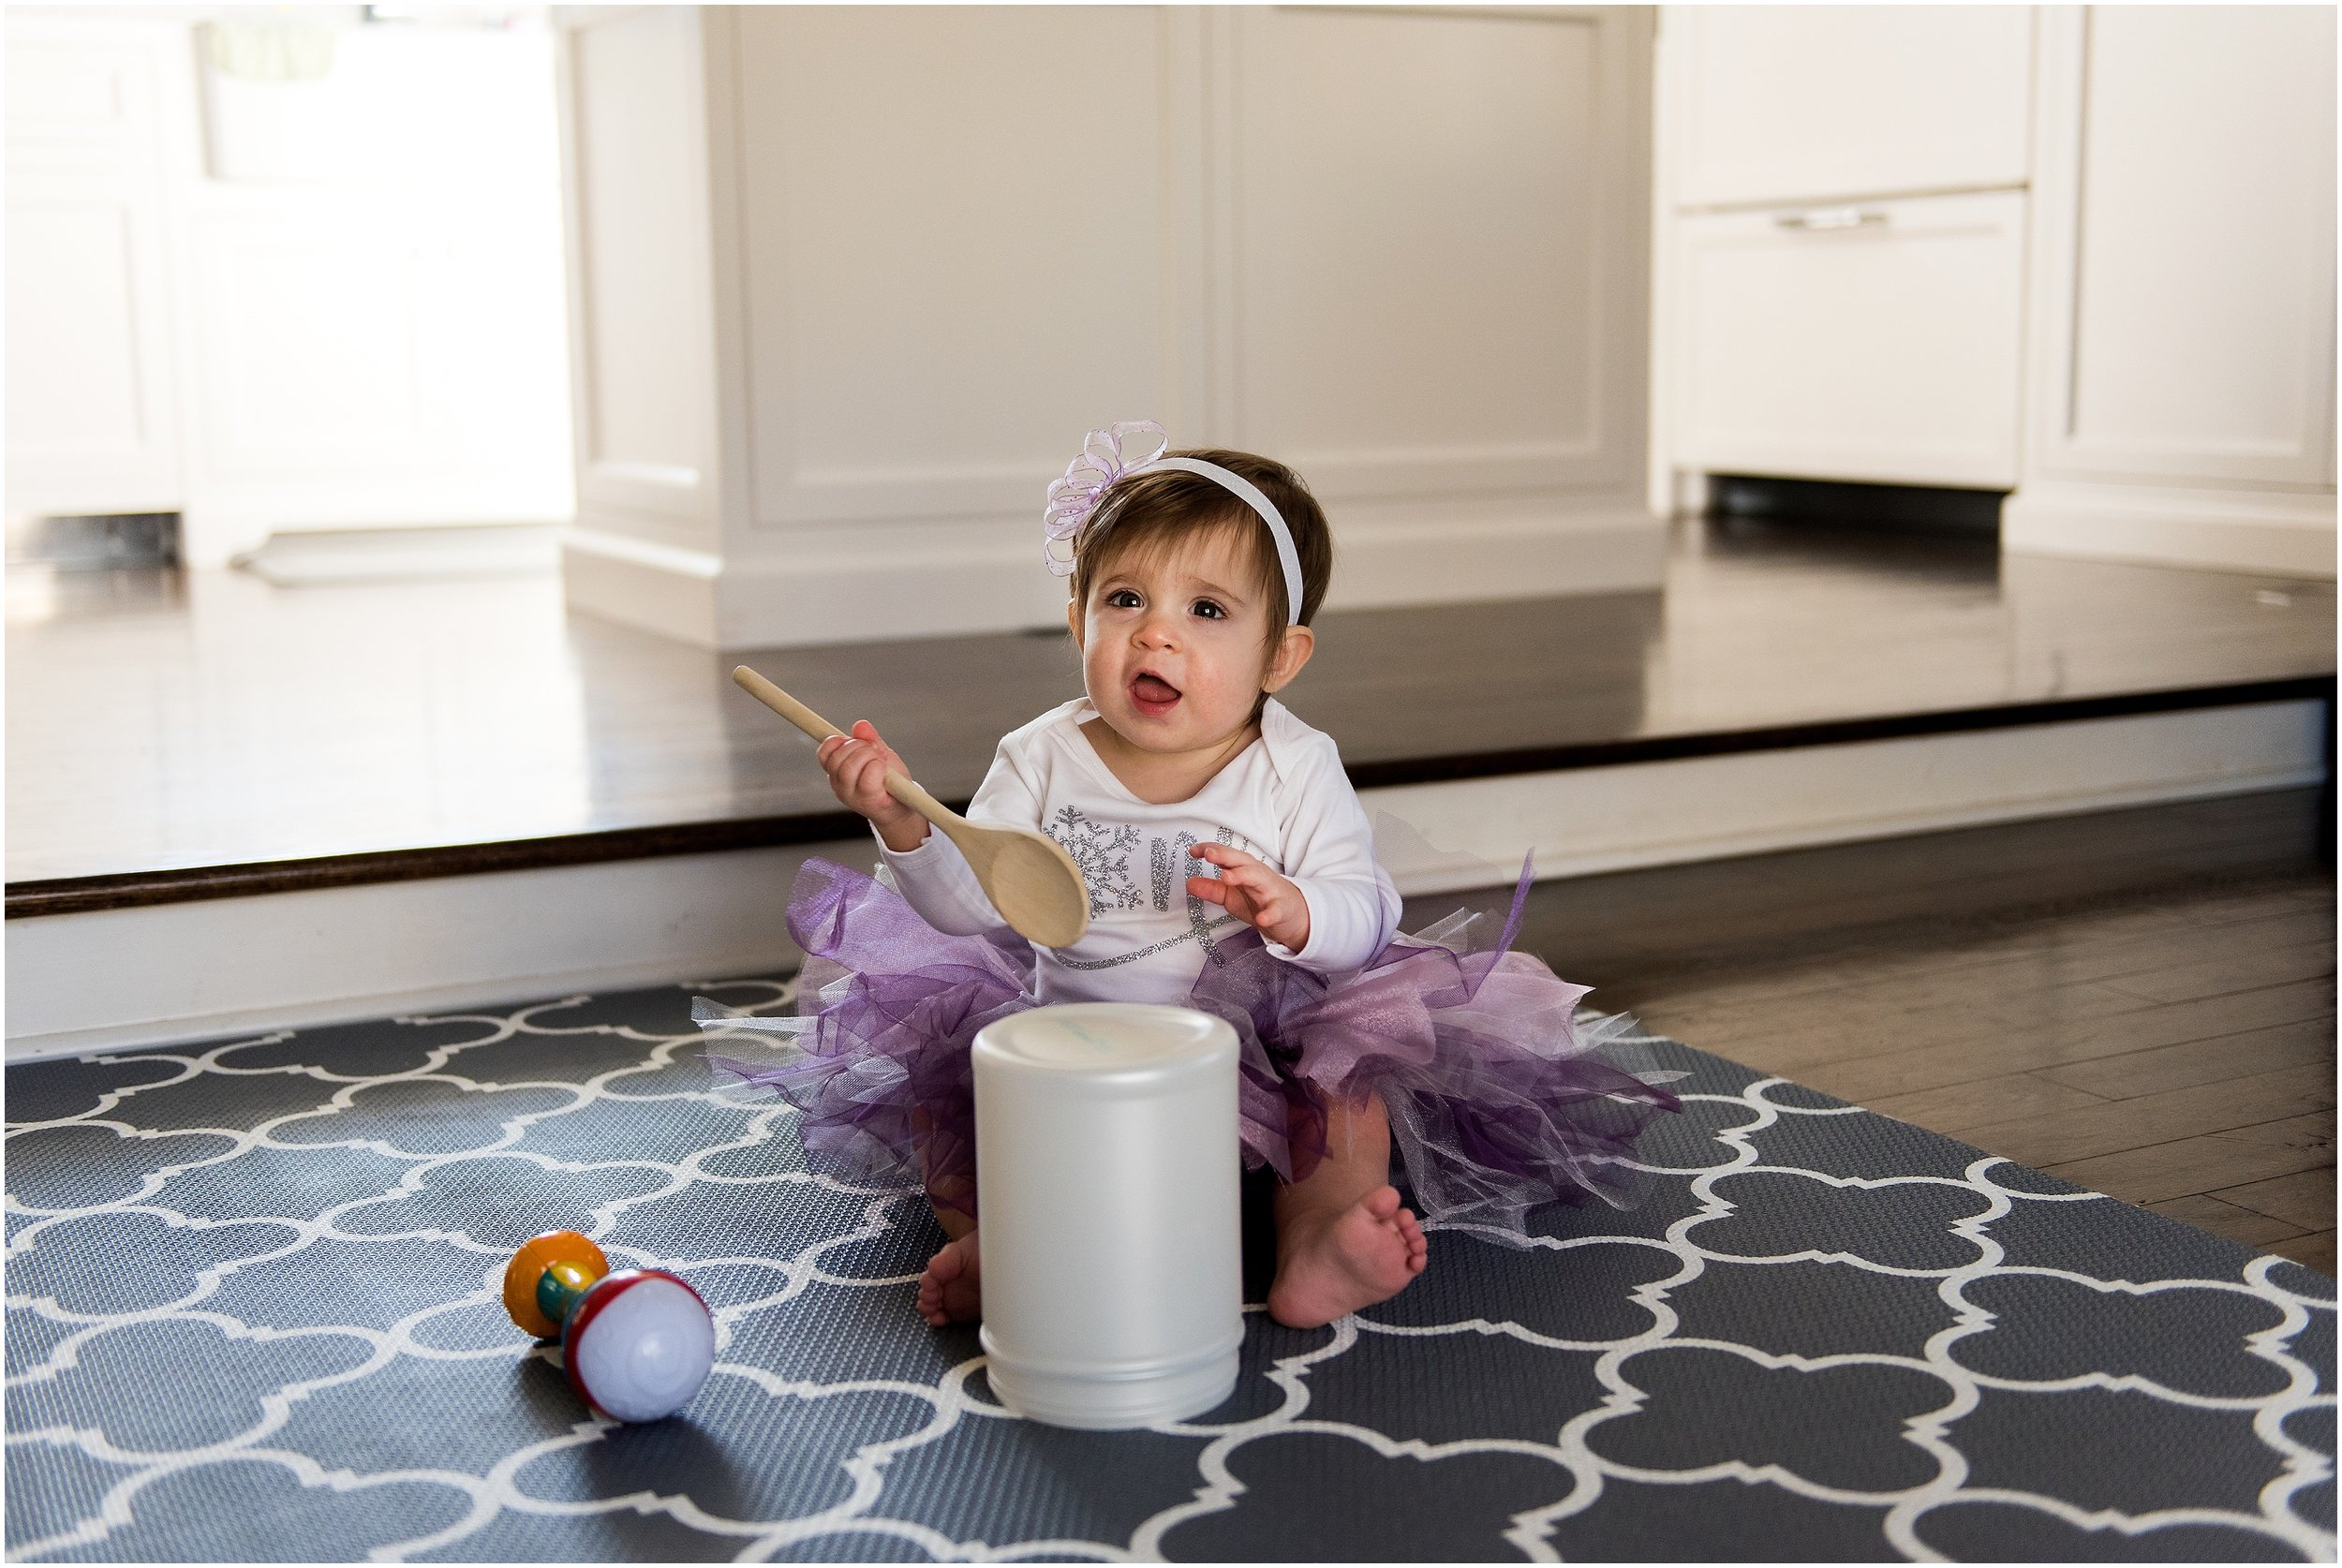 connecticut baby photography. baby girl in purple tutu